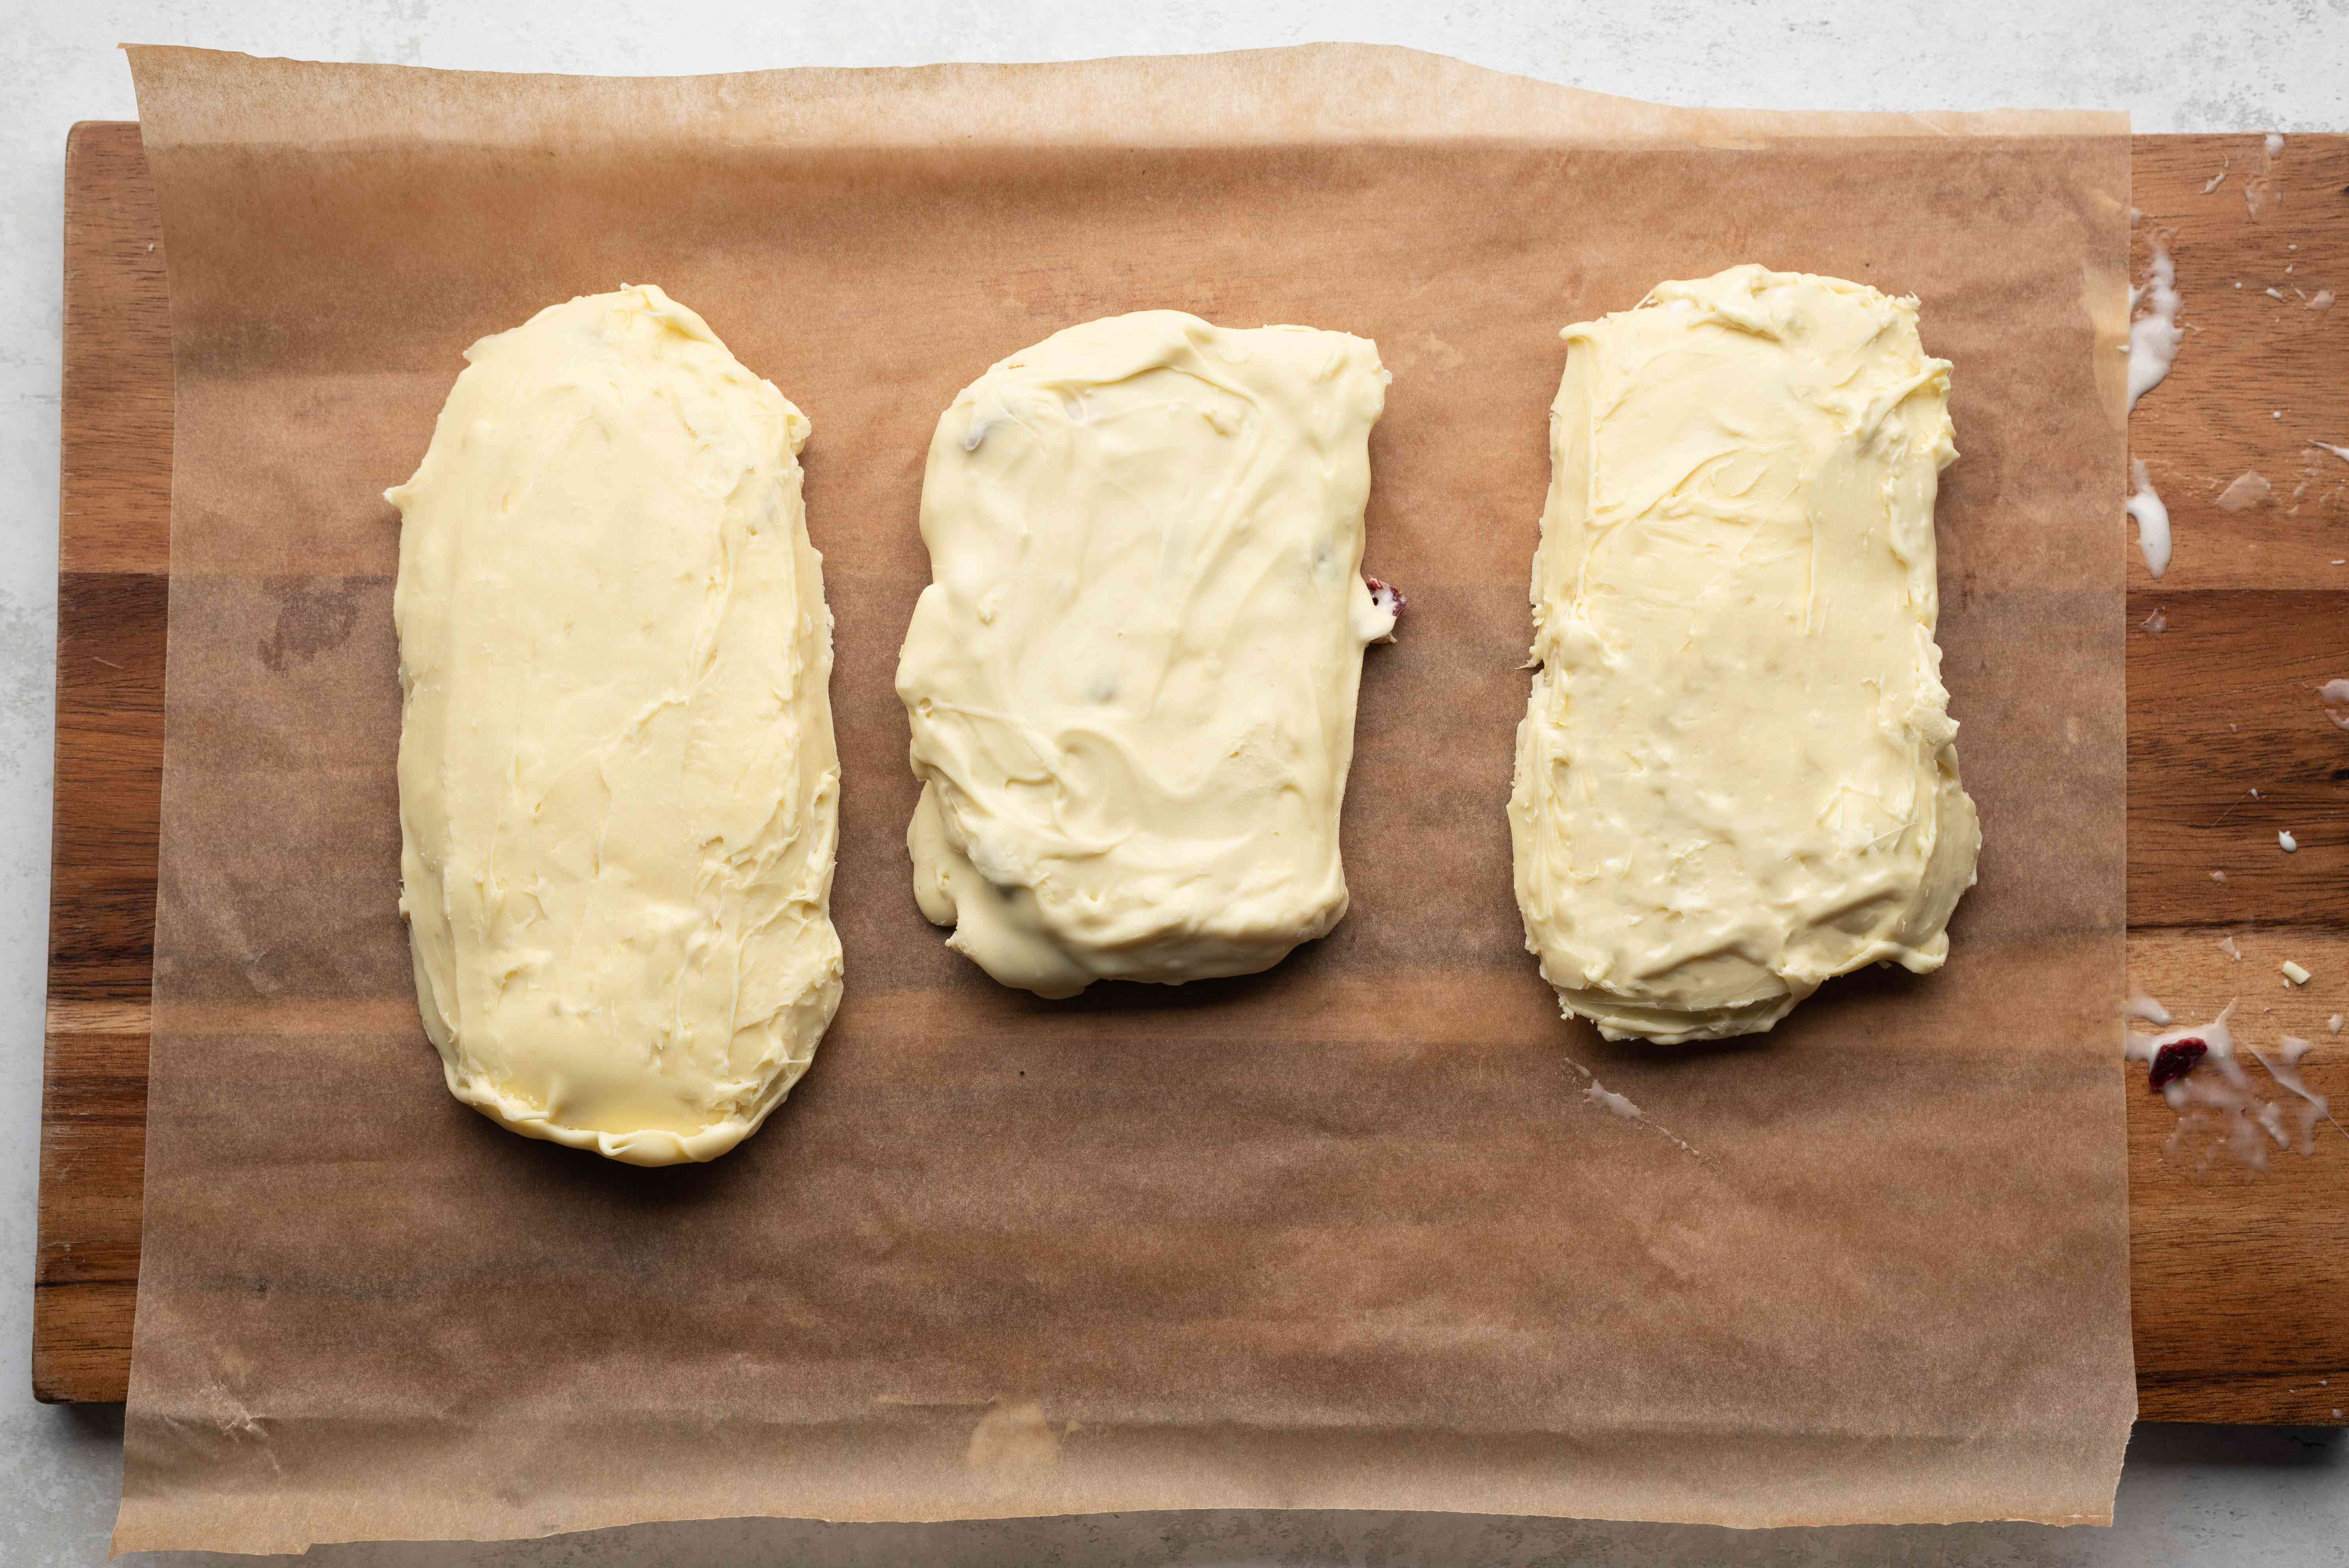 White Chocolate Nougat on parchment paper